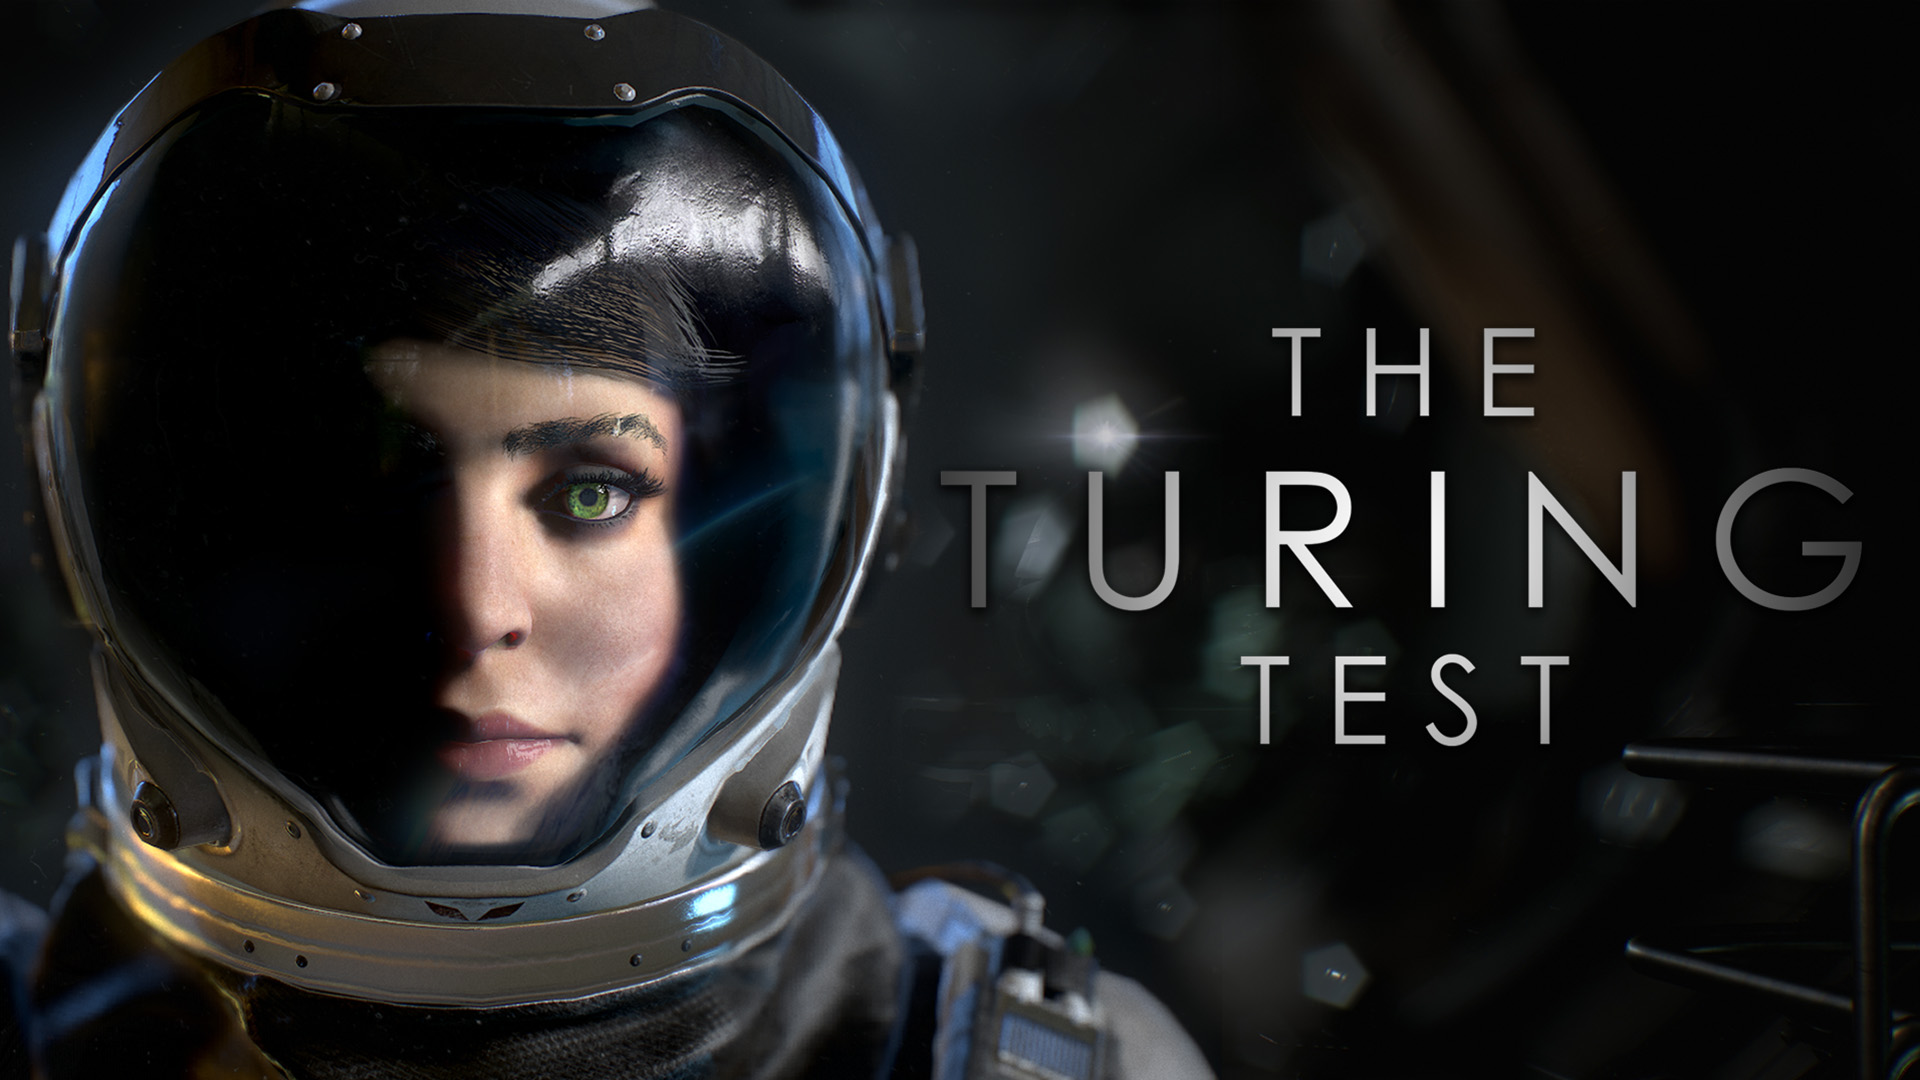 the turing test video game desktop wallpaper 61455